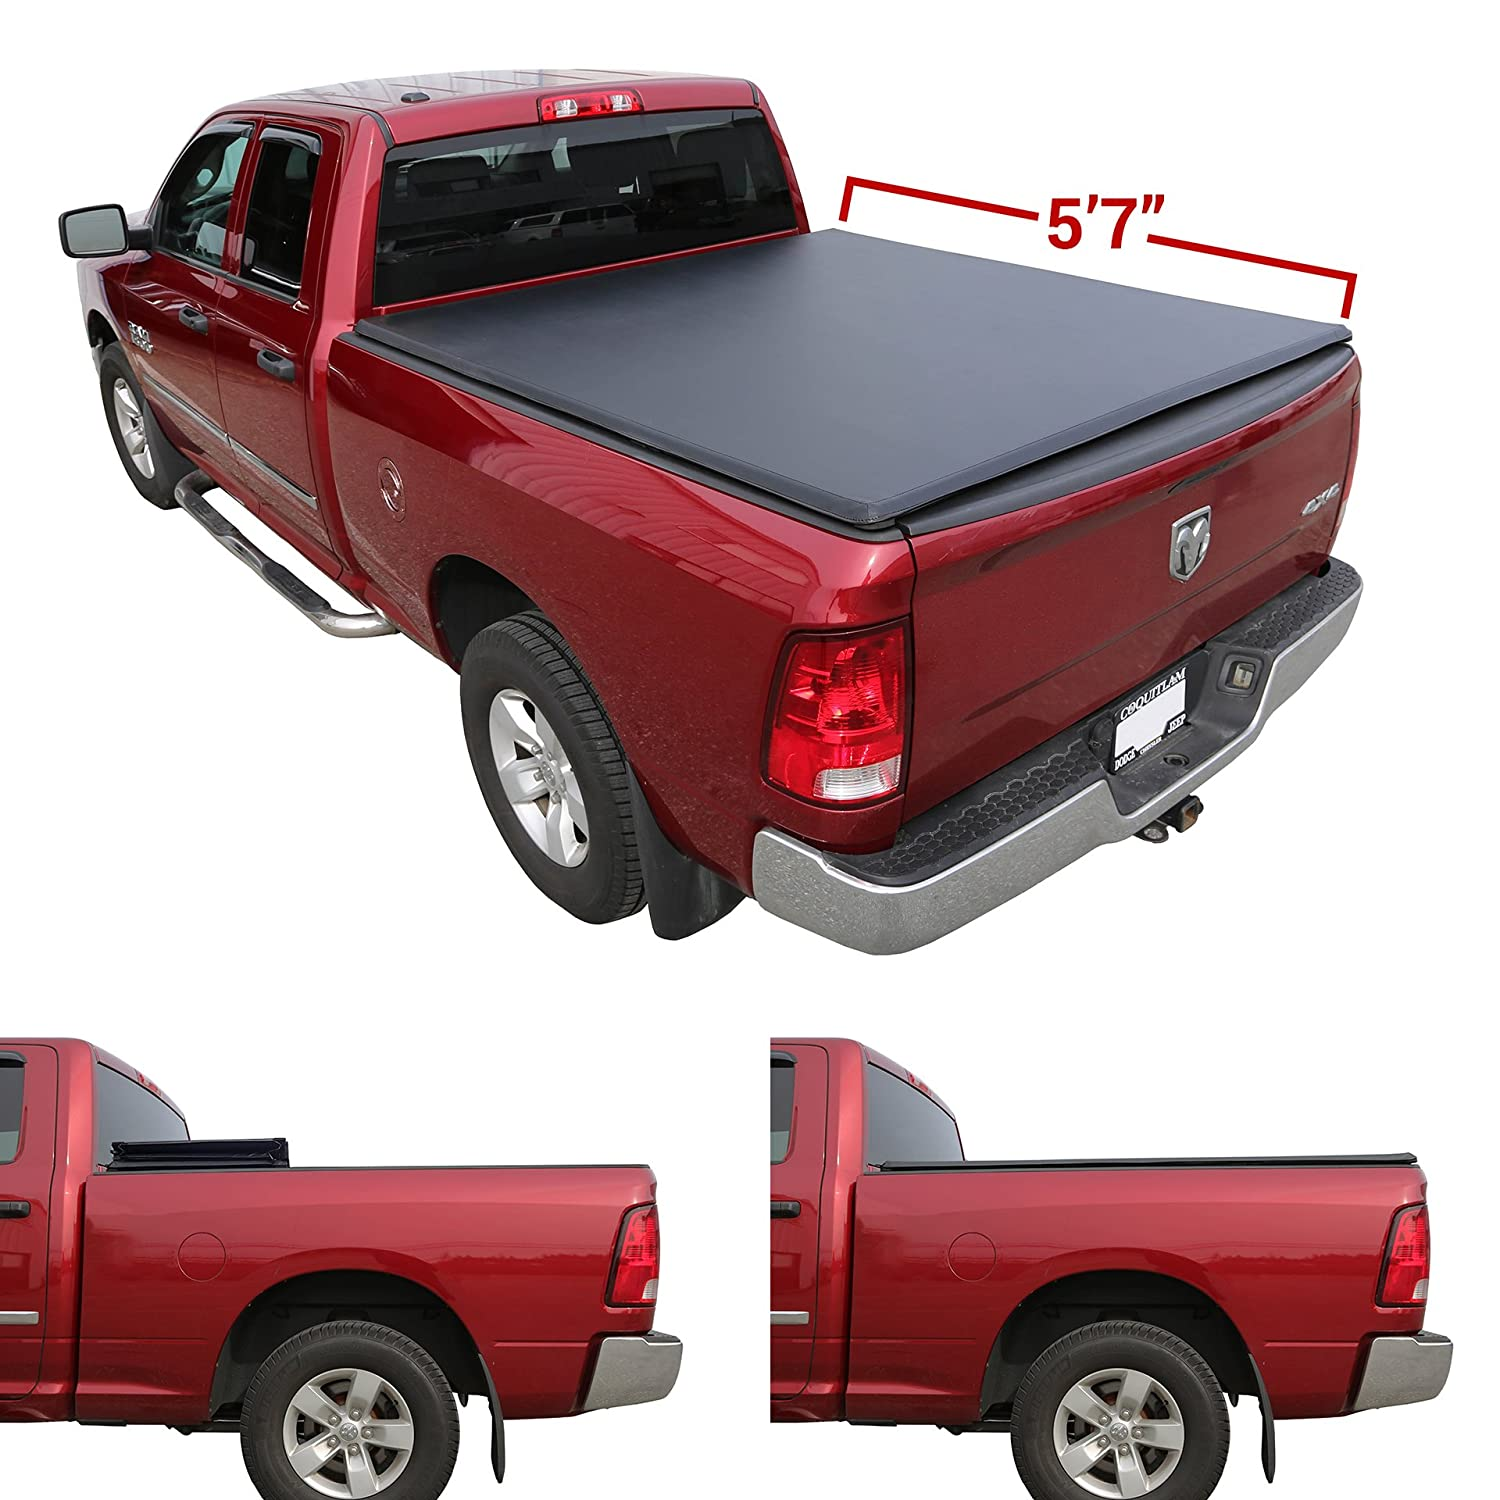 Galaxy Auto Soft Tri-Fold for 2010-18 Dodge Ram 5.7' Bed (Fleetside Models Only) - Black Trifold Truck Bed Tonneau Cover